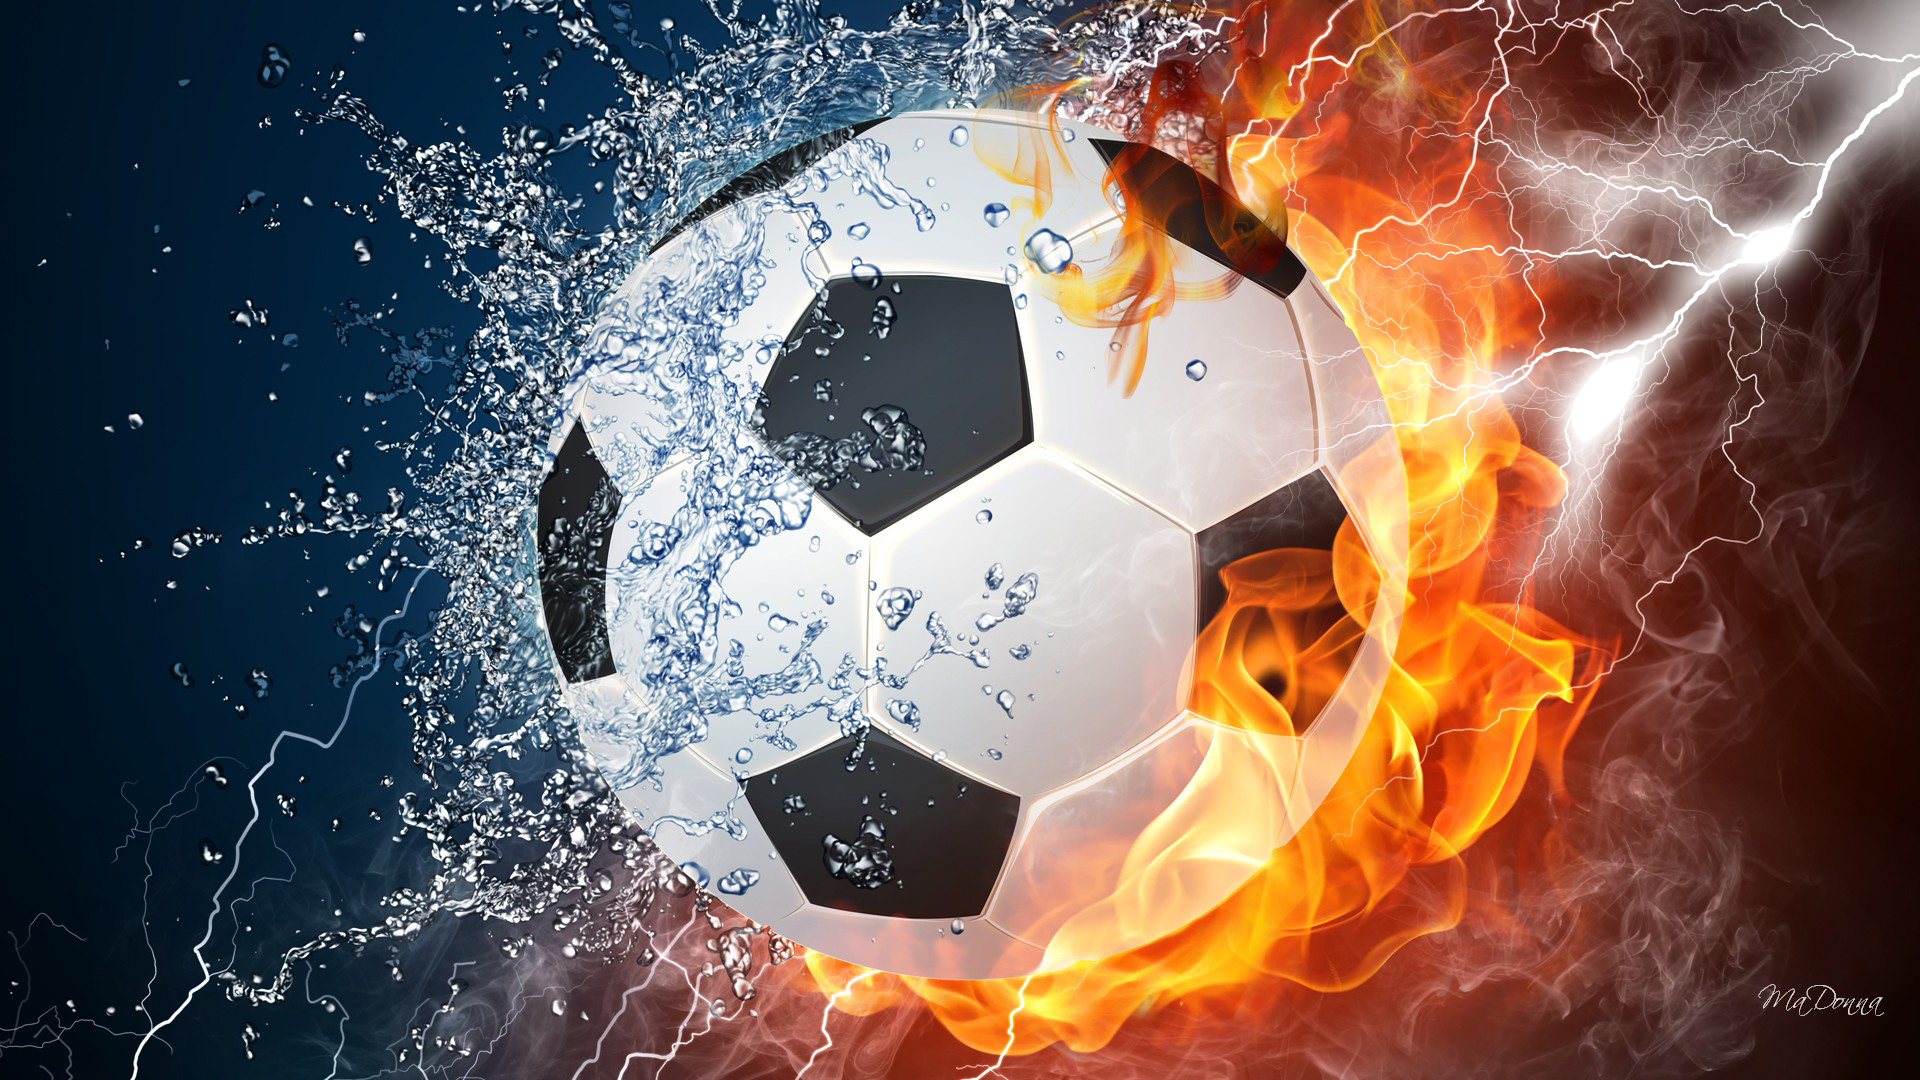 Cool Soccer Wallpaper Pictures to pin 1920x1080